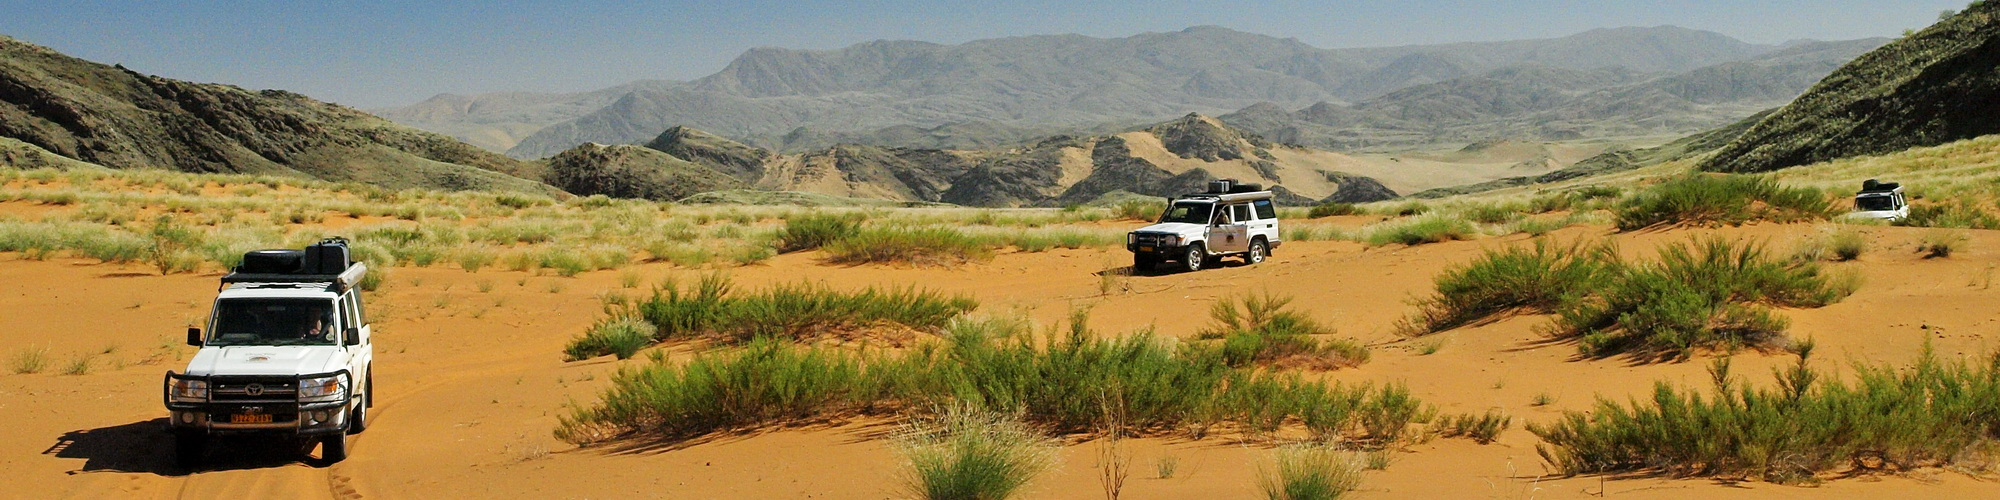 namibia-offroad-006.jpg